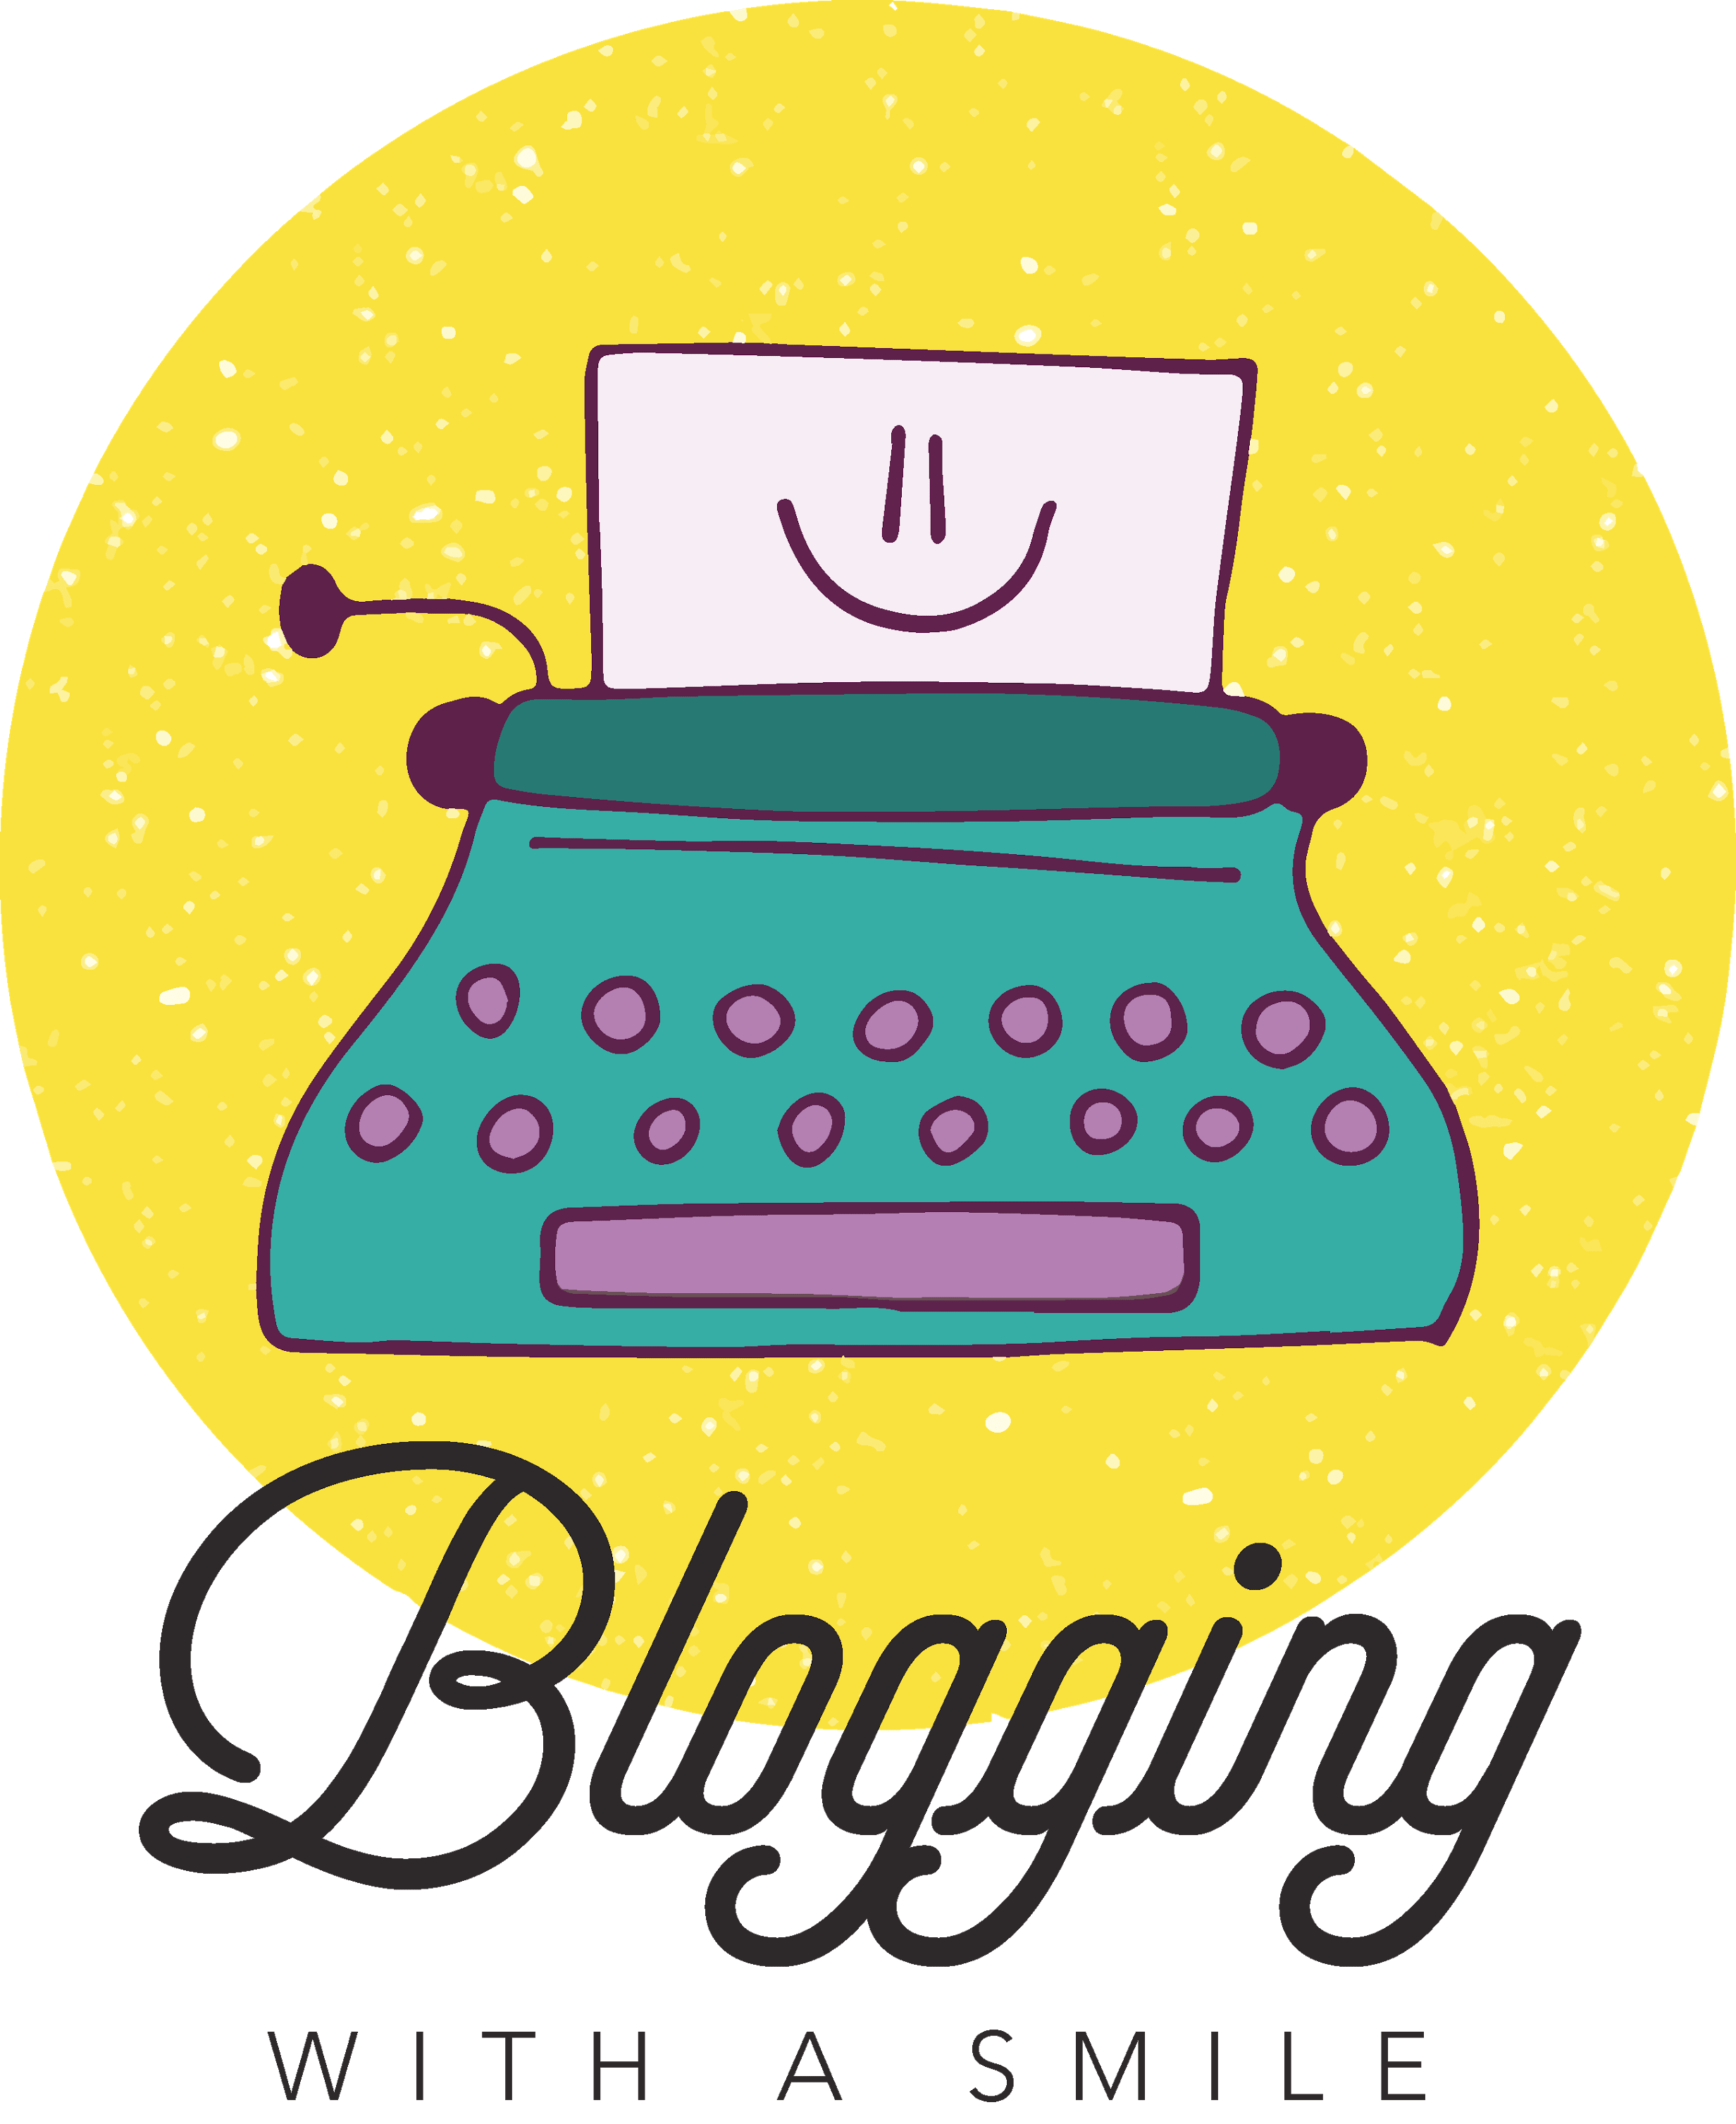 Blogging With a Smile